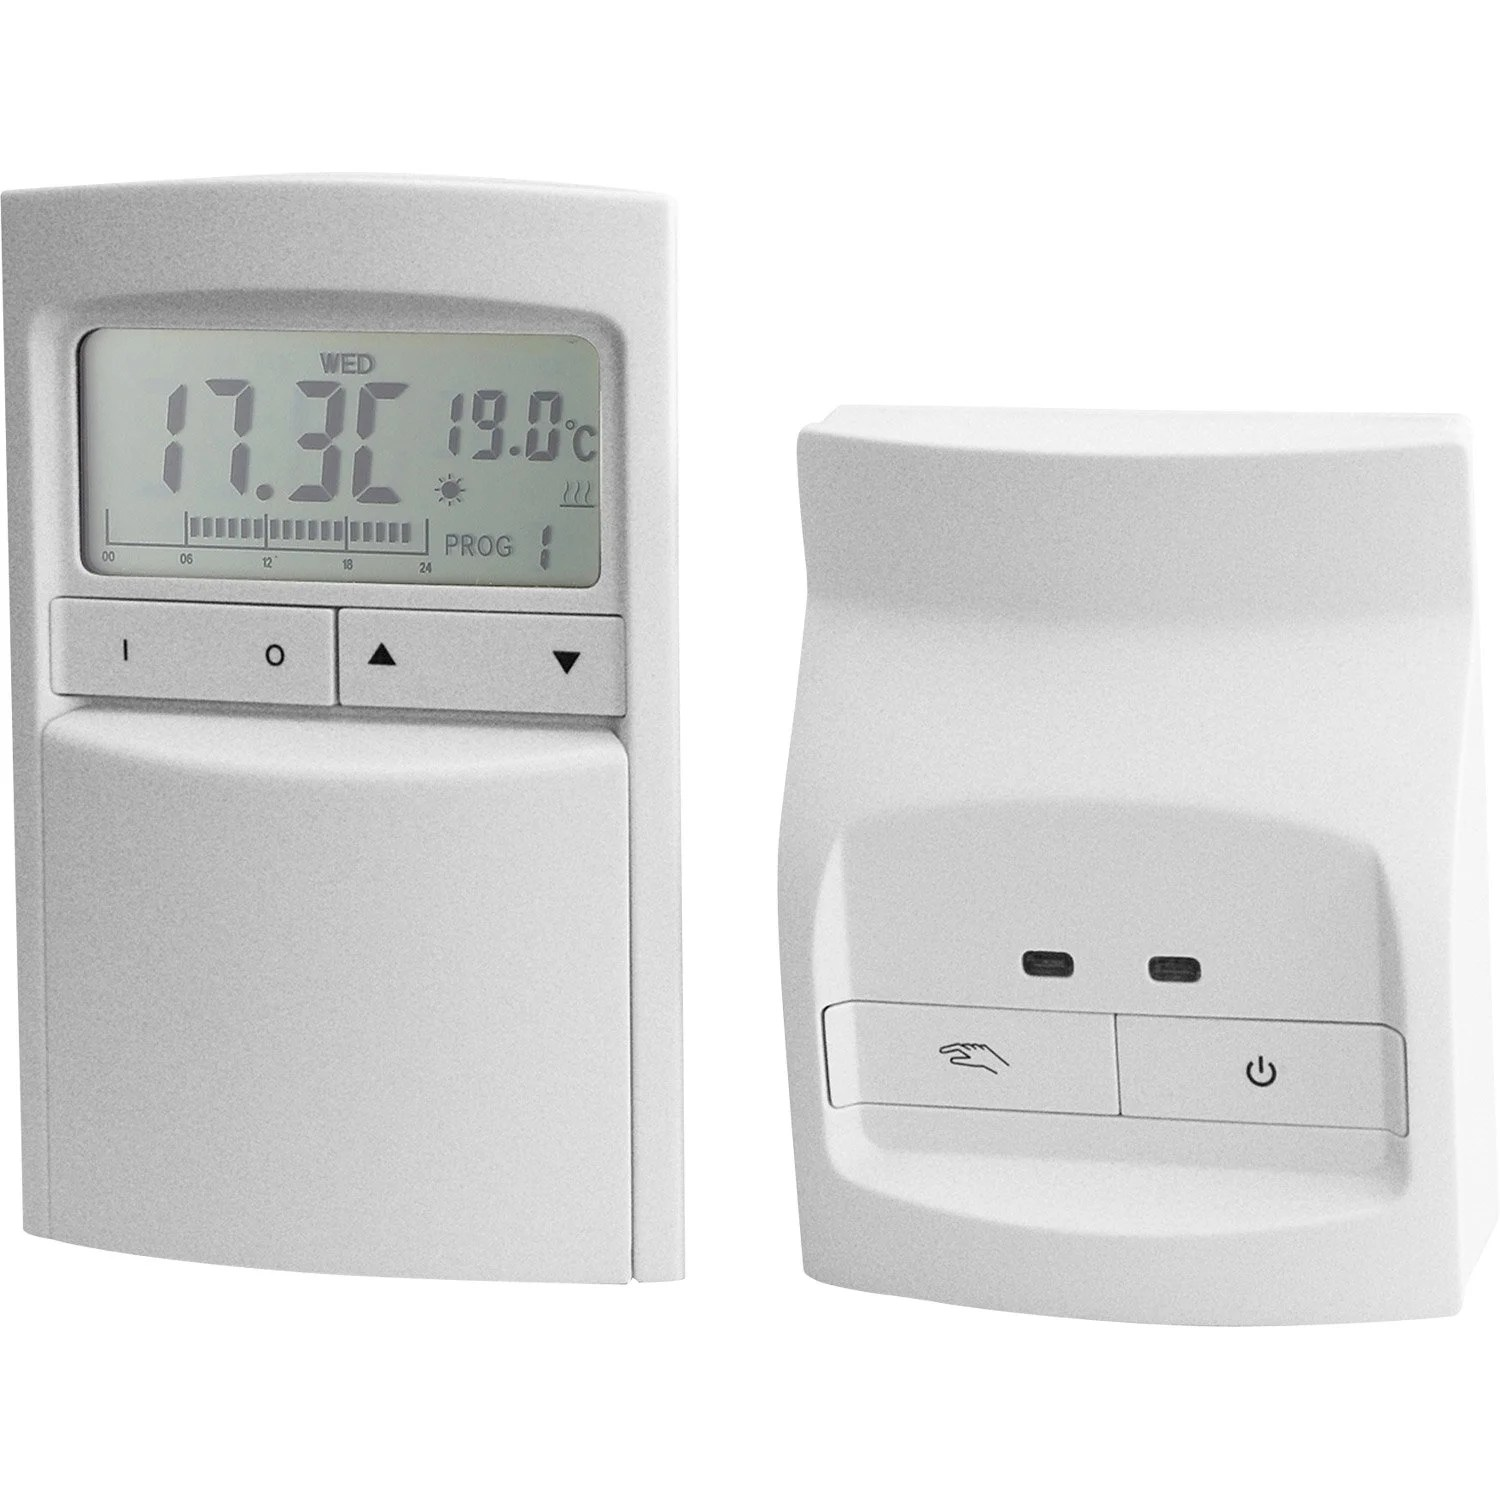 Thermostat Chaudiere Gaz Leroy Merlin Thermostat Programmable Sans Fil Celcia Crono 912 Rf